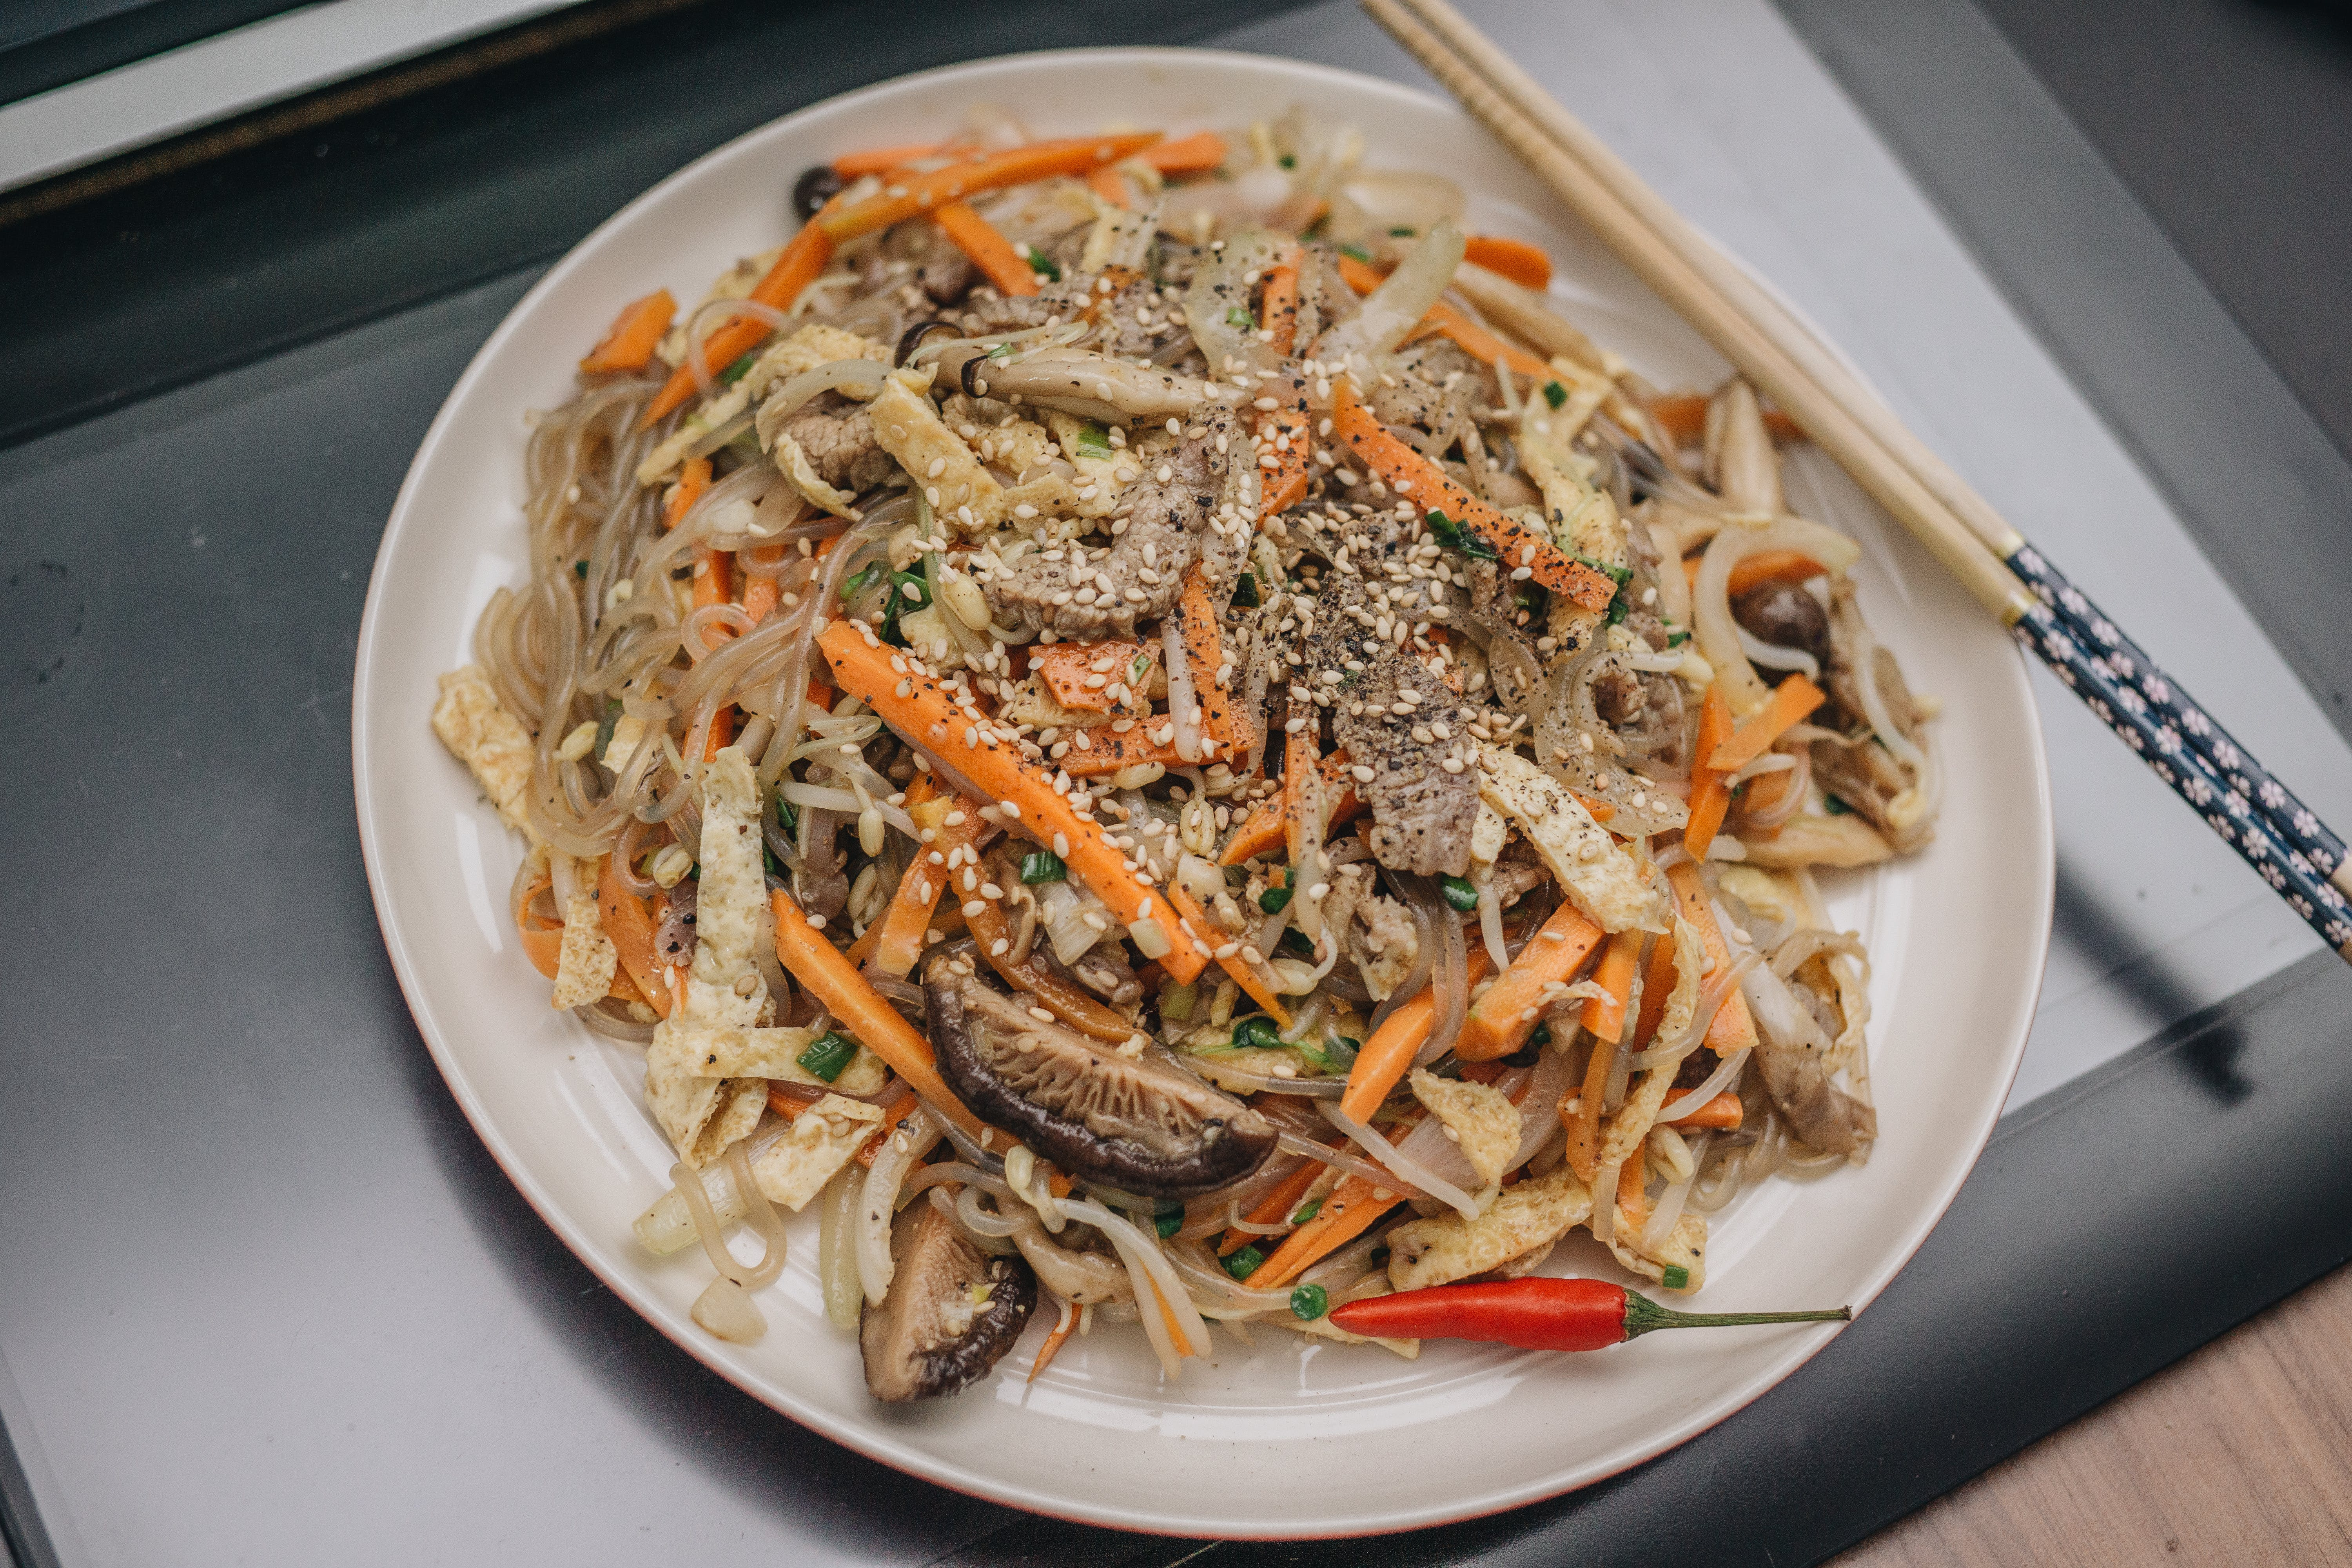 Photograph of Fried Noodles with vegetables